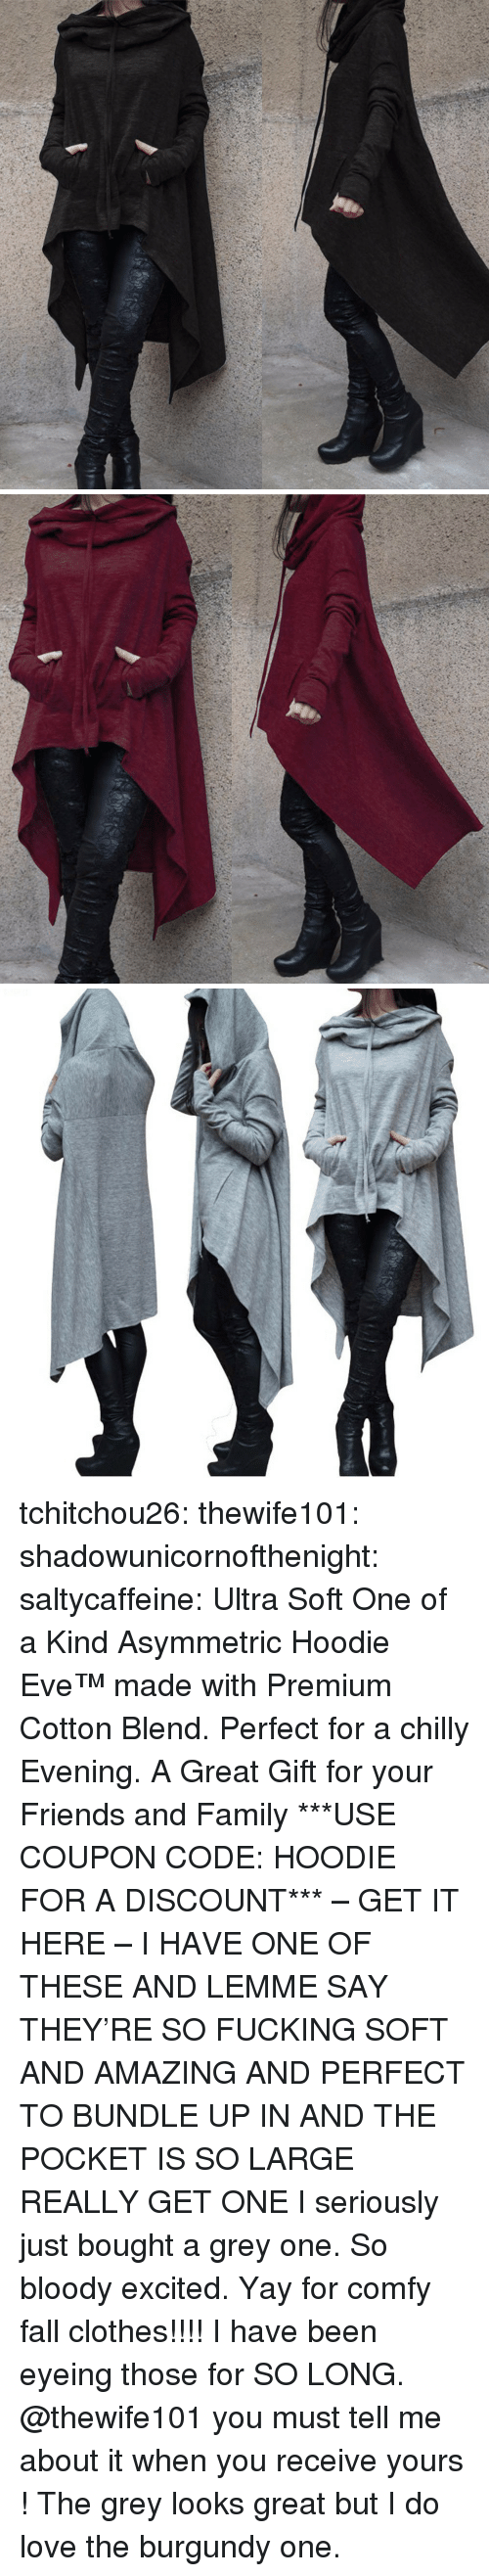 Clothes, Fall, and Family: tchitchou26:  thewife101: shadowunicornofthenight:  saltycaffeine:  Ultra Soft One of a Kind Asymmetric Hoodie Eve™ made with Premium Cotton Blend. Perfect for a chilly Evening. A Great Gift for your Friends and Family ***USE COUPON CODE: HOODIE FOR A DISCOUNT*** – GET IT HERE –   I HAVE ONE OF THESE AND LEMME SAY THEY'RE SO FUCKING SOFT AND AMAZING AND PERFECT TO BUNDLE UP IN AND THE POCKET IS SO LARGE REALLY GET ONE   I seriously just bought a grey one. So bloody excited. Yay for comfy fall clothes!!!!   I have been eyeing those for SO LONG. @thewife101 you must tell me about it when you receive yours ! The grey looks great but I do love the burgundy one.